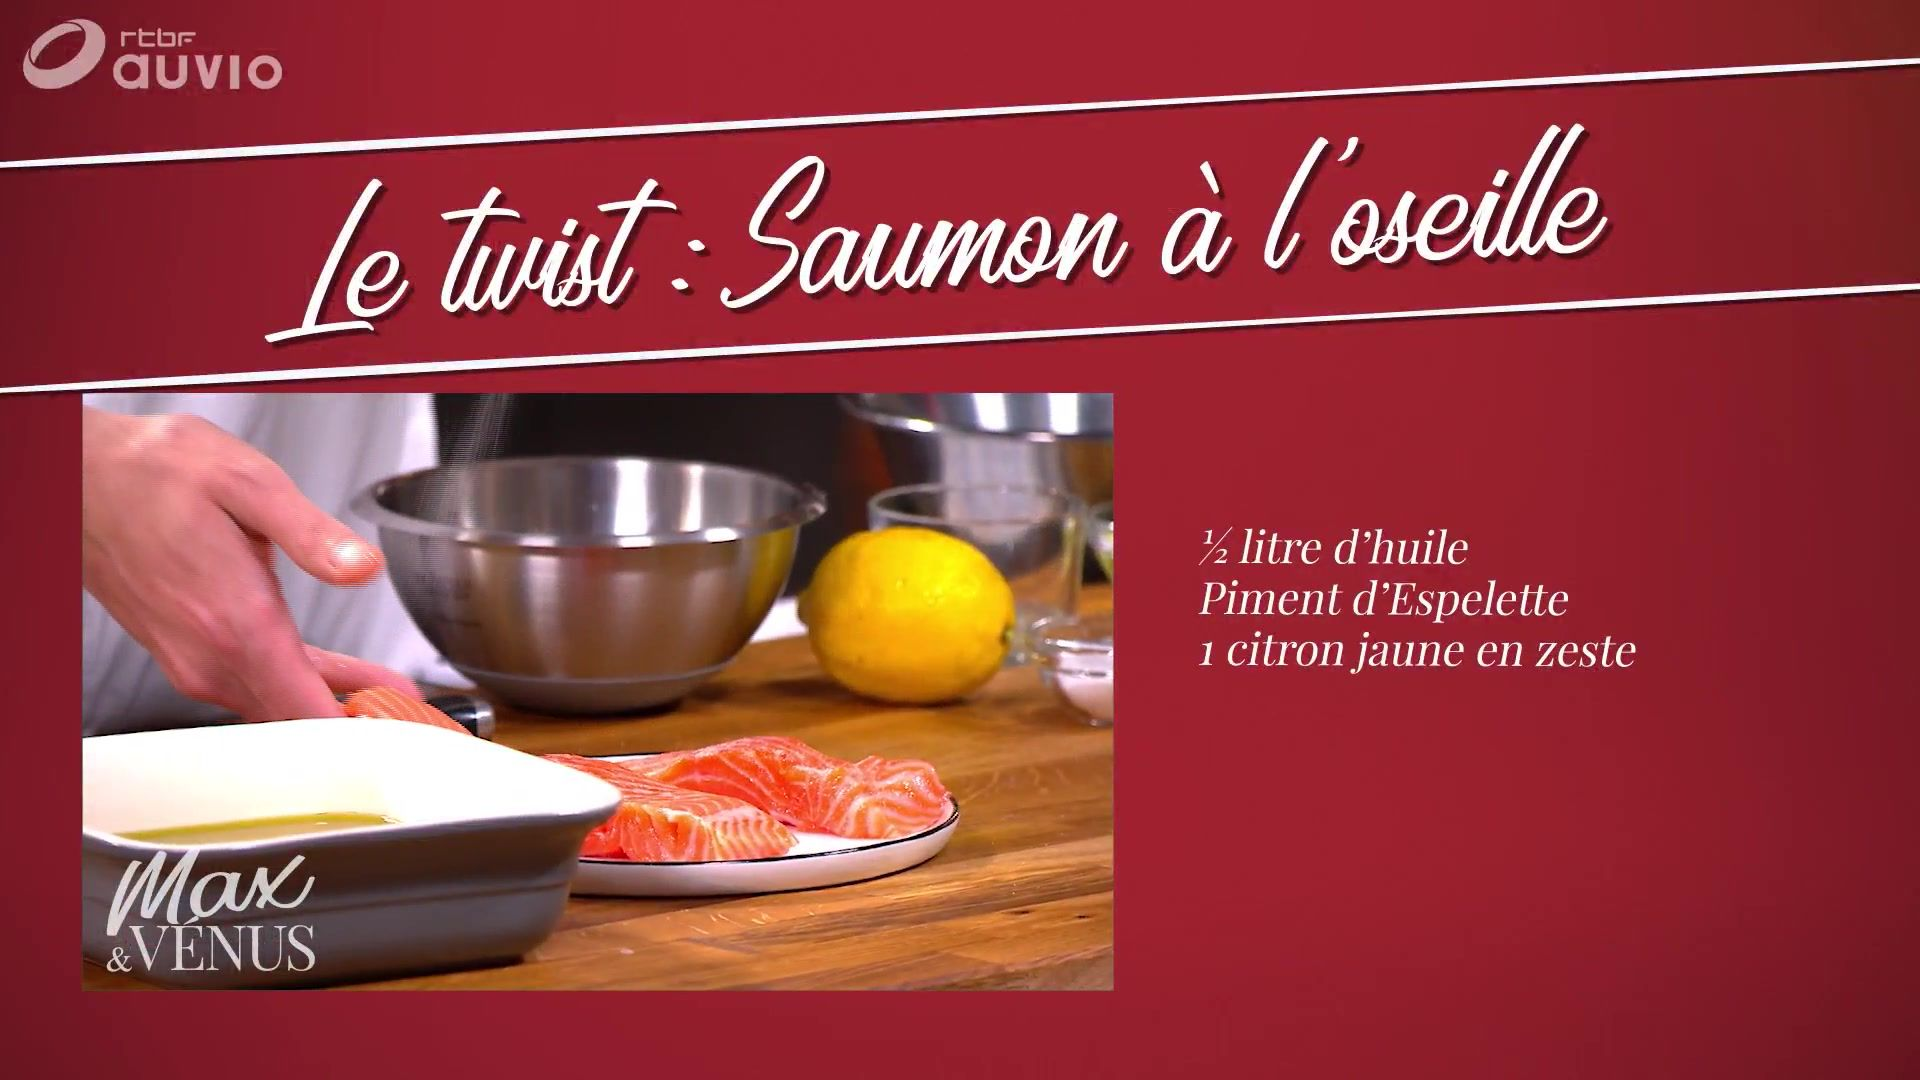 Https Www Rtbf Be Auvio Detail Tuto Souffle Au Fromage Id